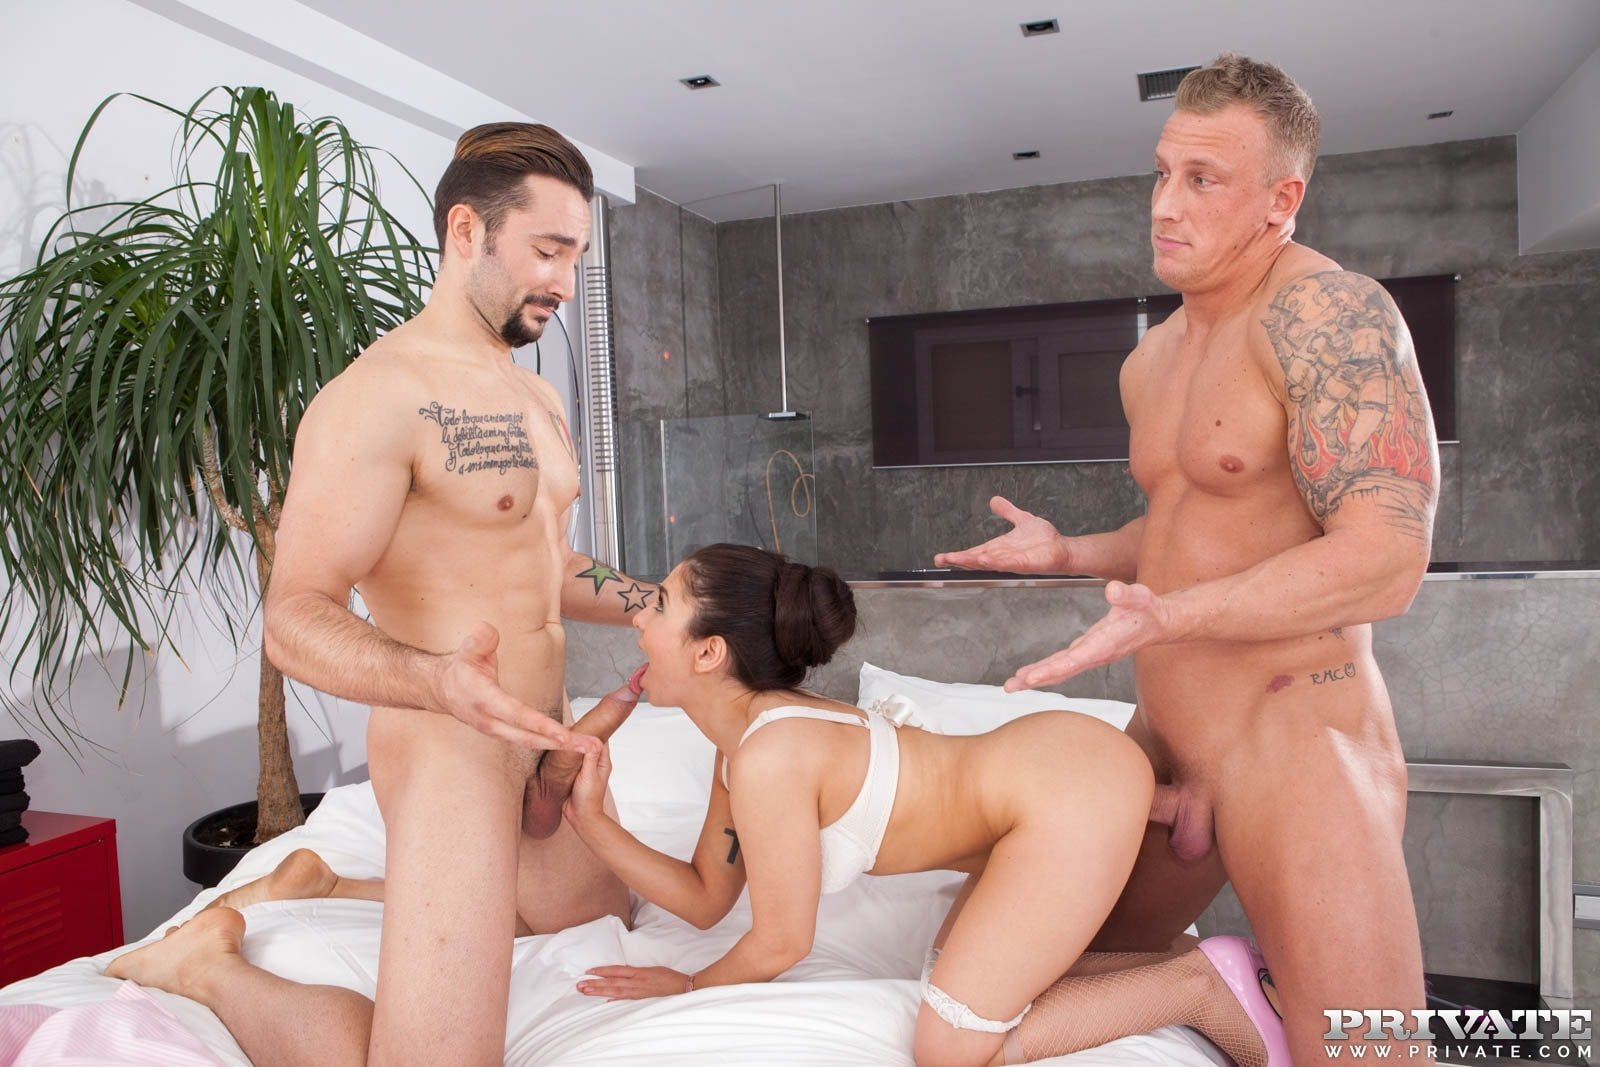 Hardcore anal sex hd Photo private naked homemade puerto rico